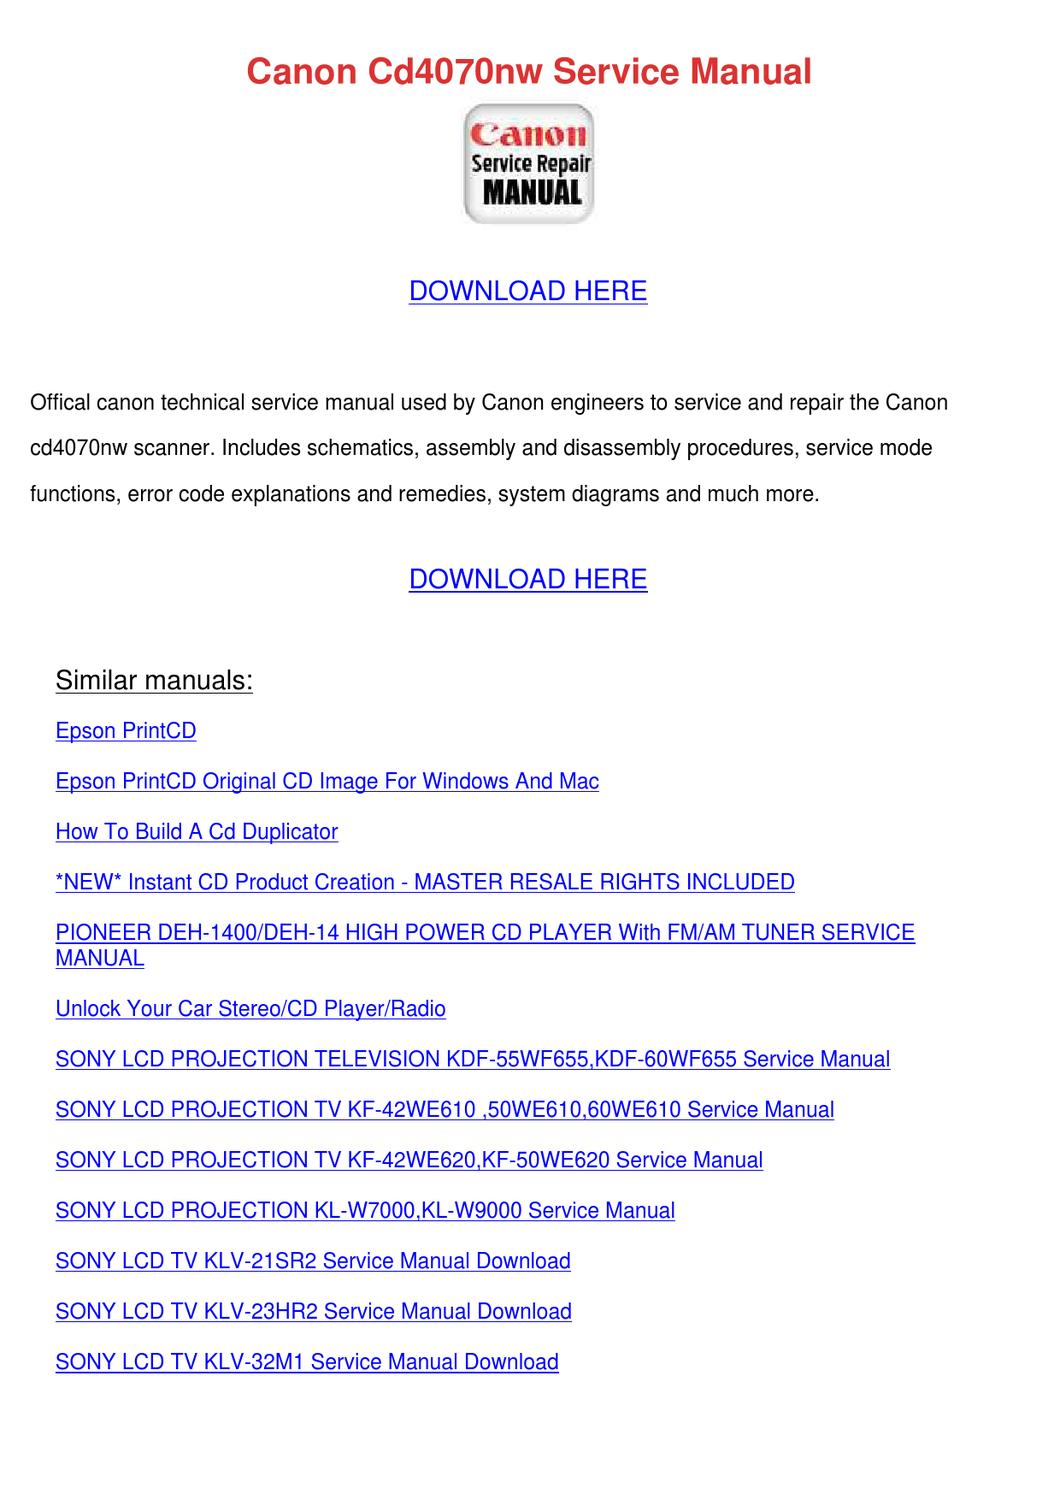 Canon Cd4070nw Service Manual by Debrah Hungate - issuu